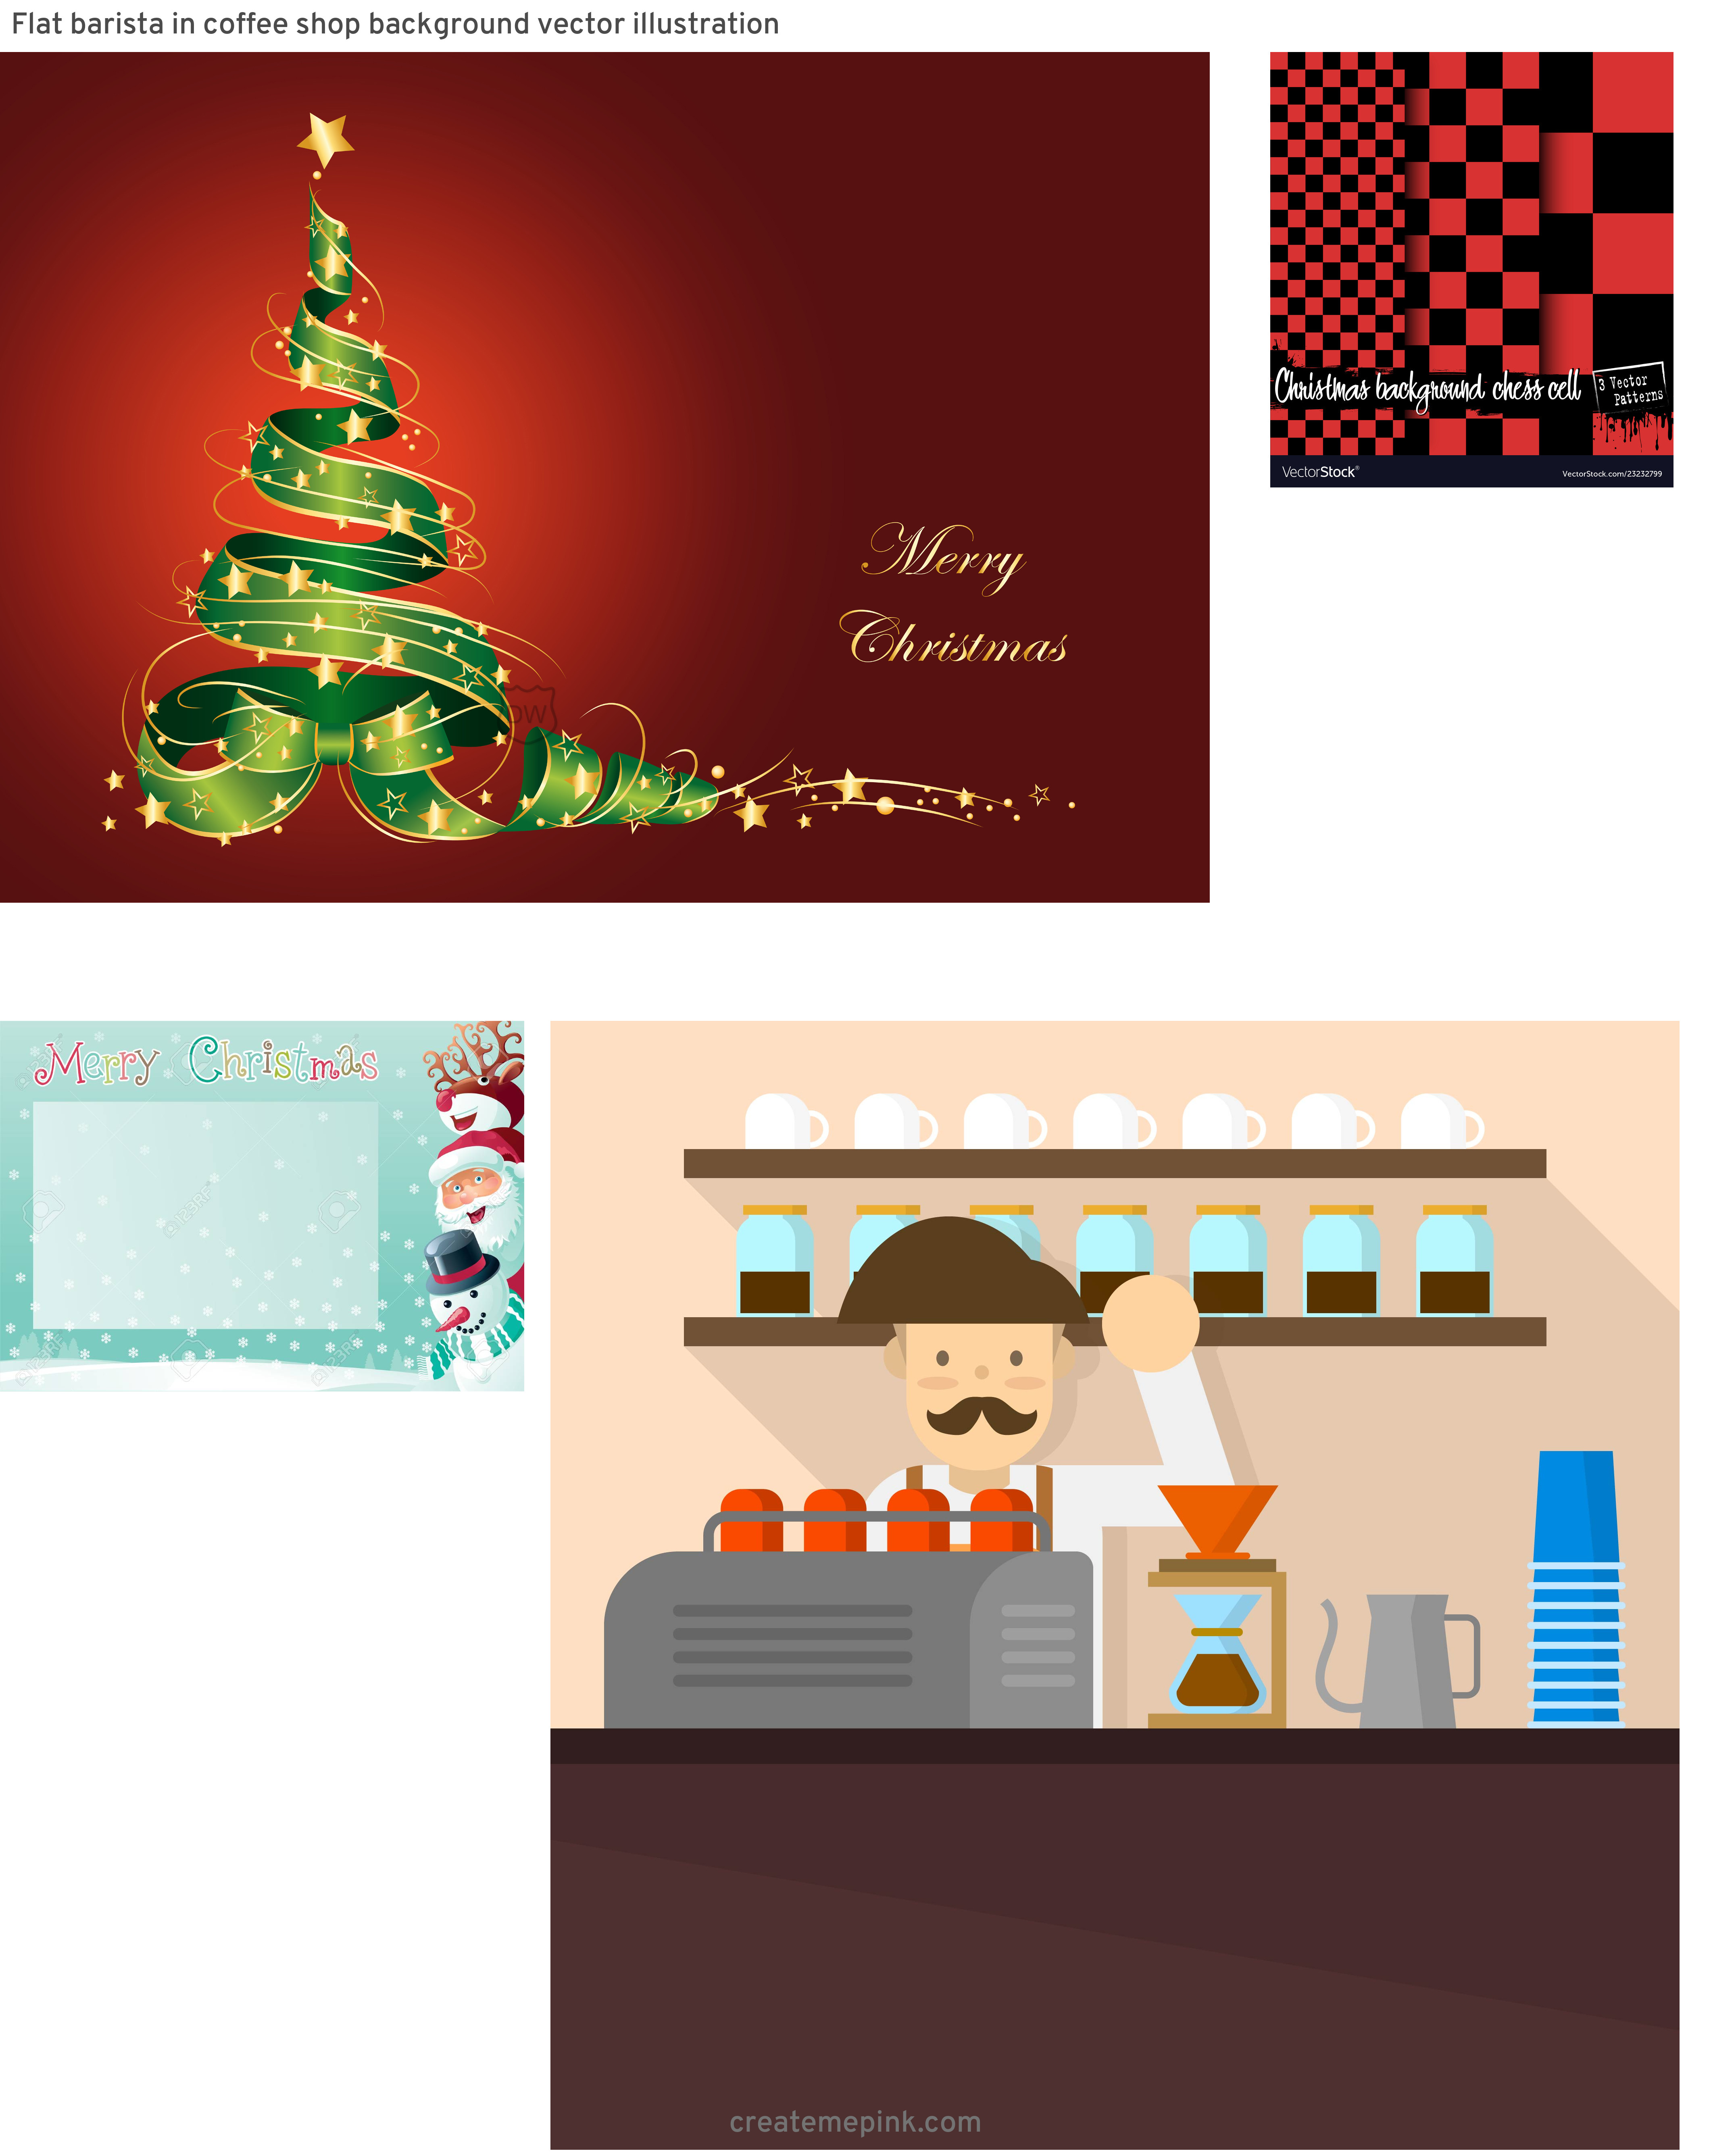 Professional Christmas Backgrounds Vector: Flat Barista In Coffee Shop Background Vector Illustration